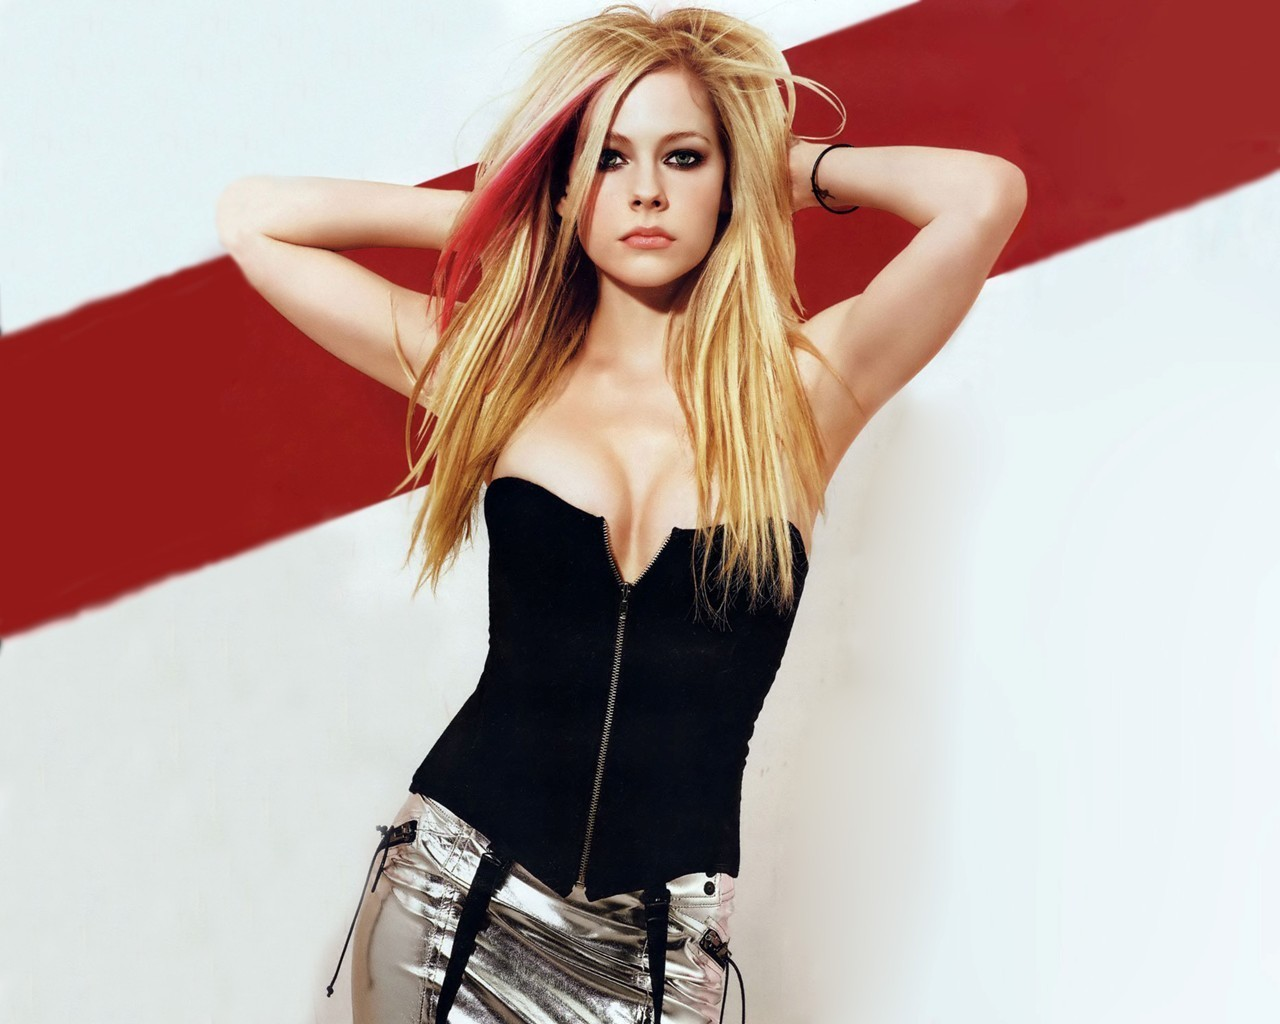 Lavigne Hottest Actress Fresh Wallpapers 2011   All About Hollywood